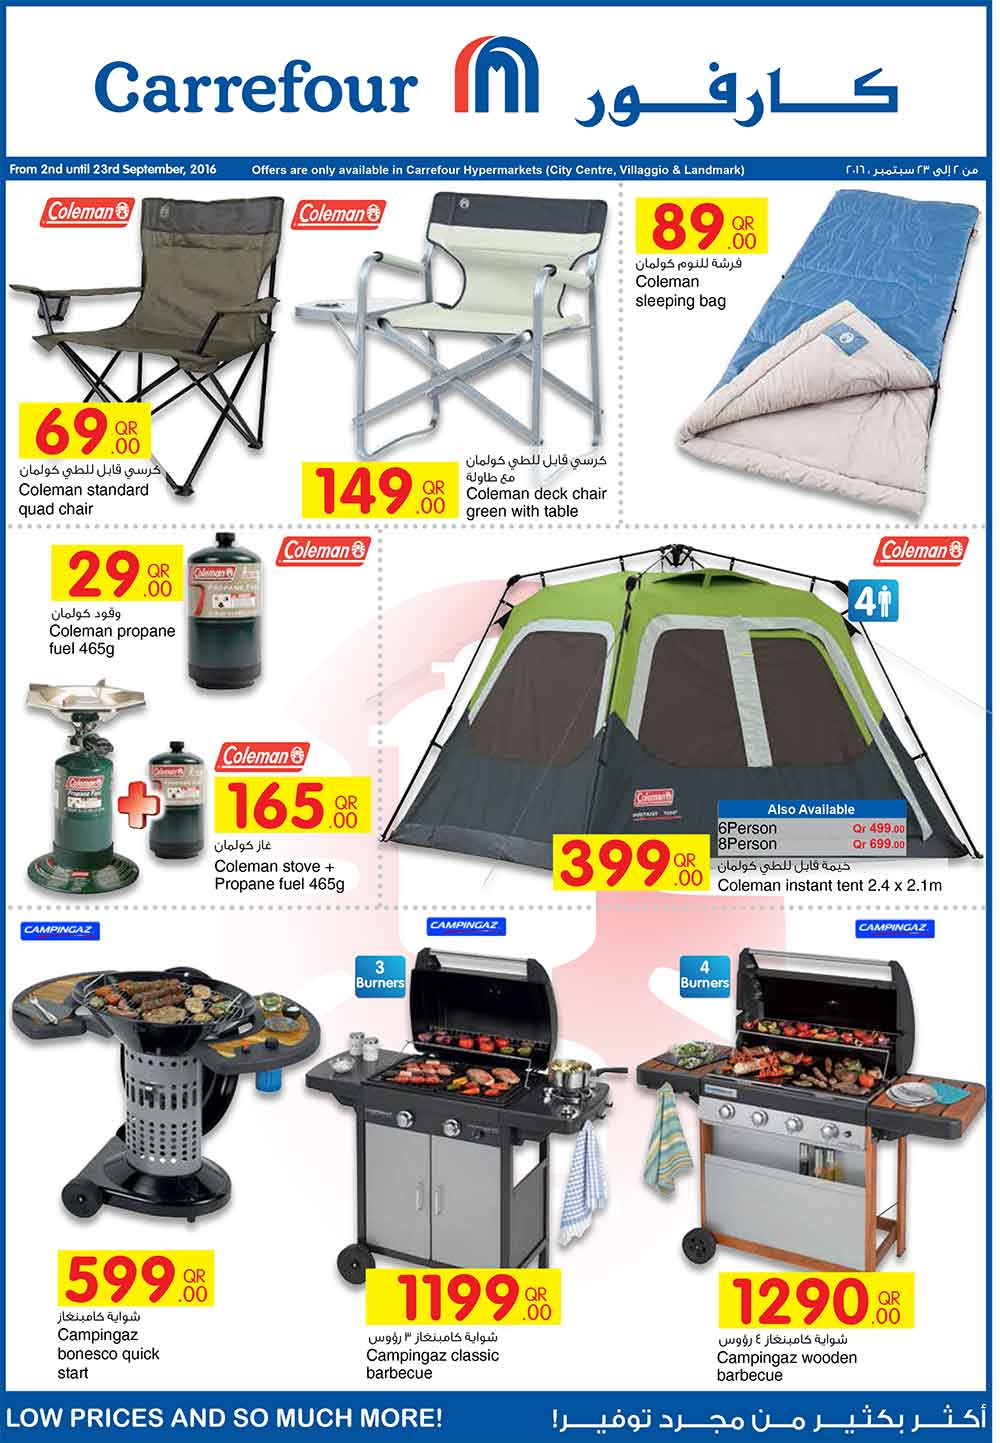 carrefour-outdoor-03-09-1  sc 1 st  Qatar i Discounts & carrefour-outdoor-03-09-1 | Qatar i Discounts